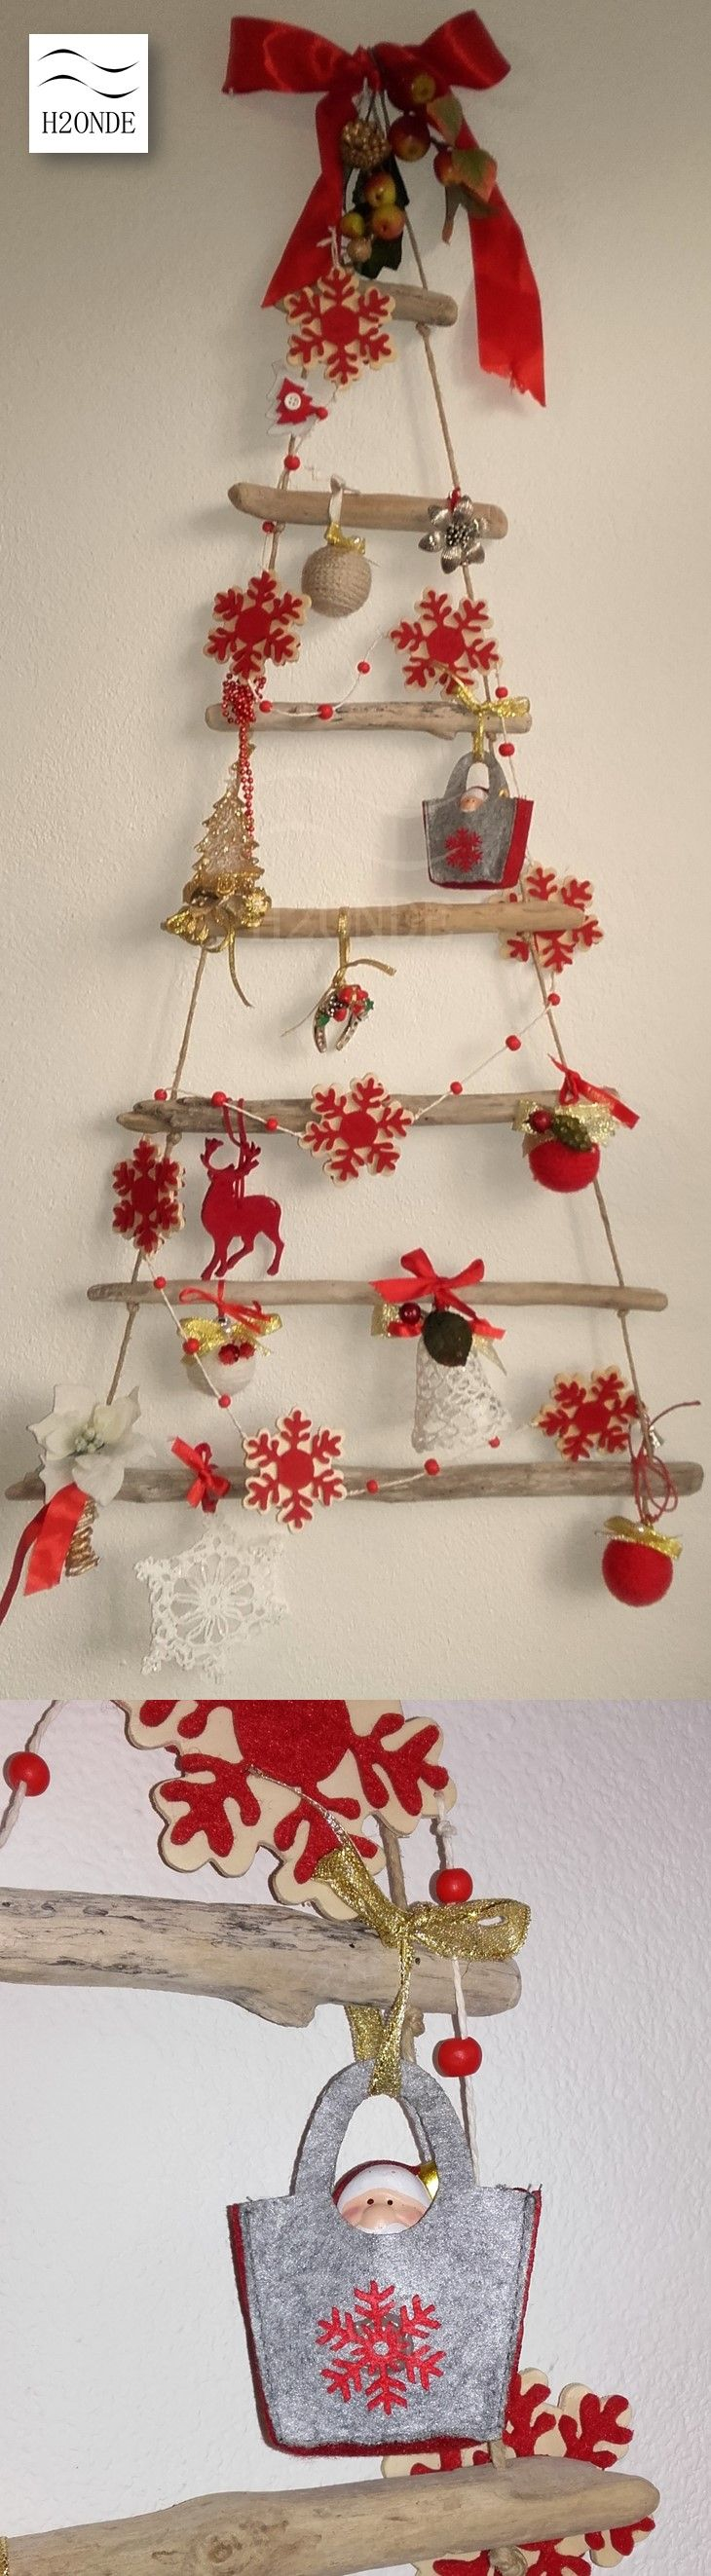 Wood Wall Christmas Tree Driftwood Xmas Modern Coastal